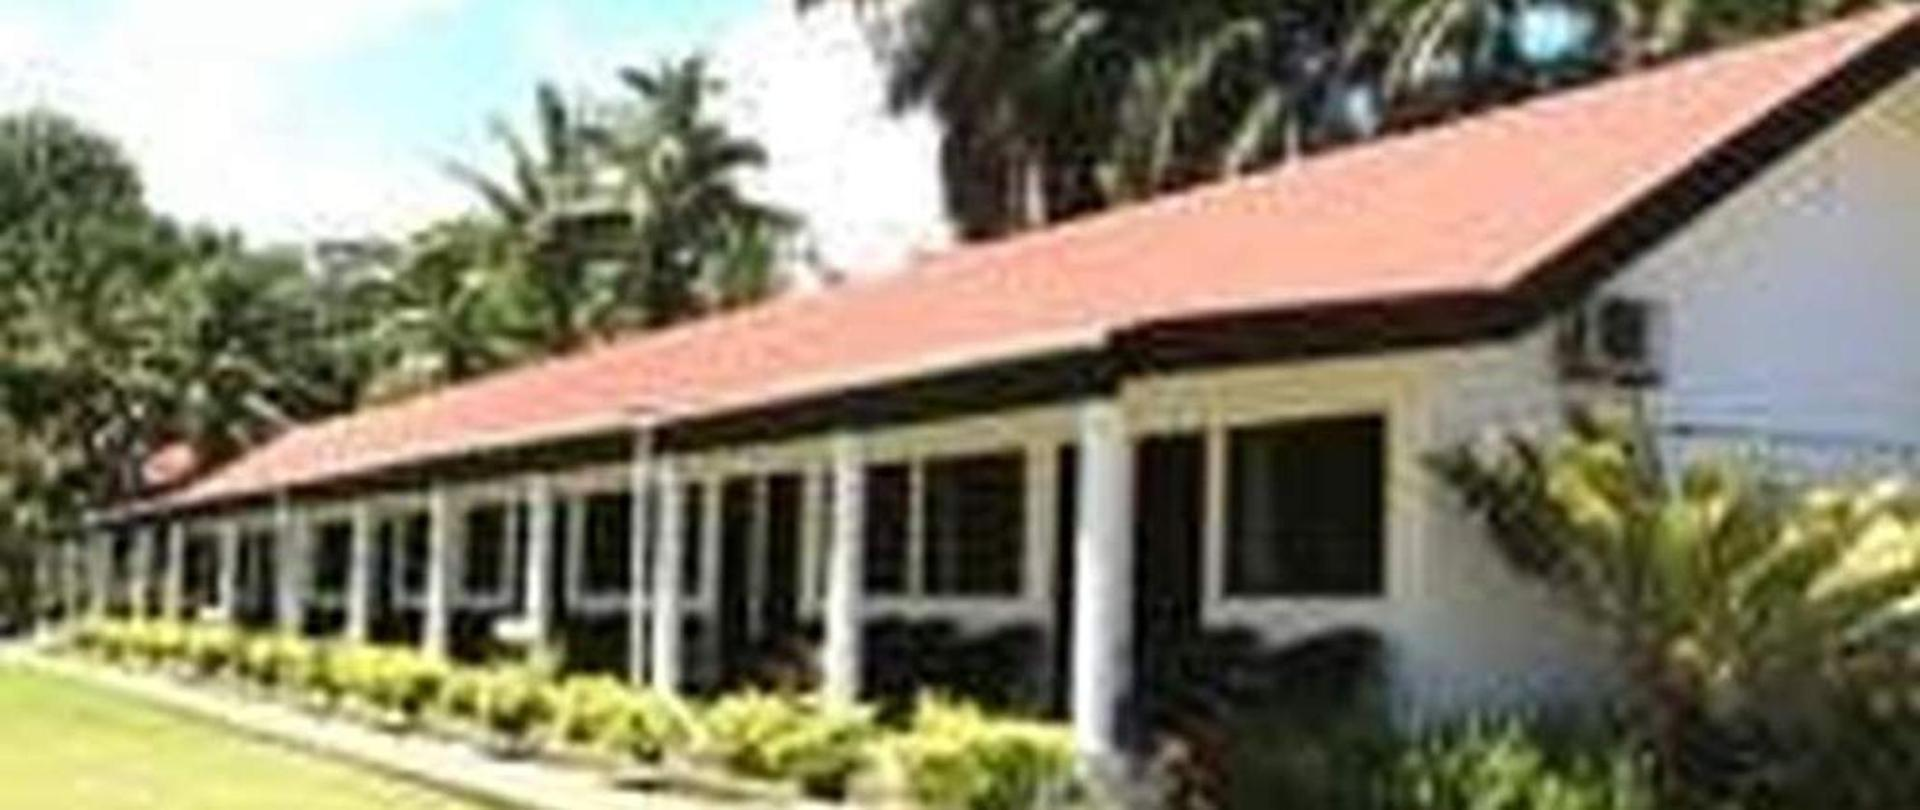 accommodation-block.jpg